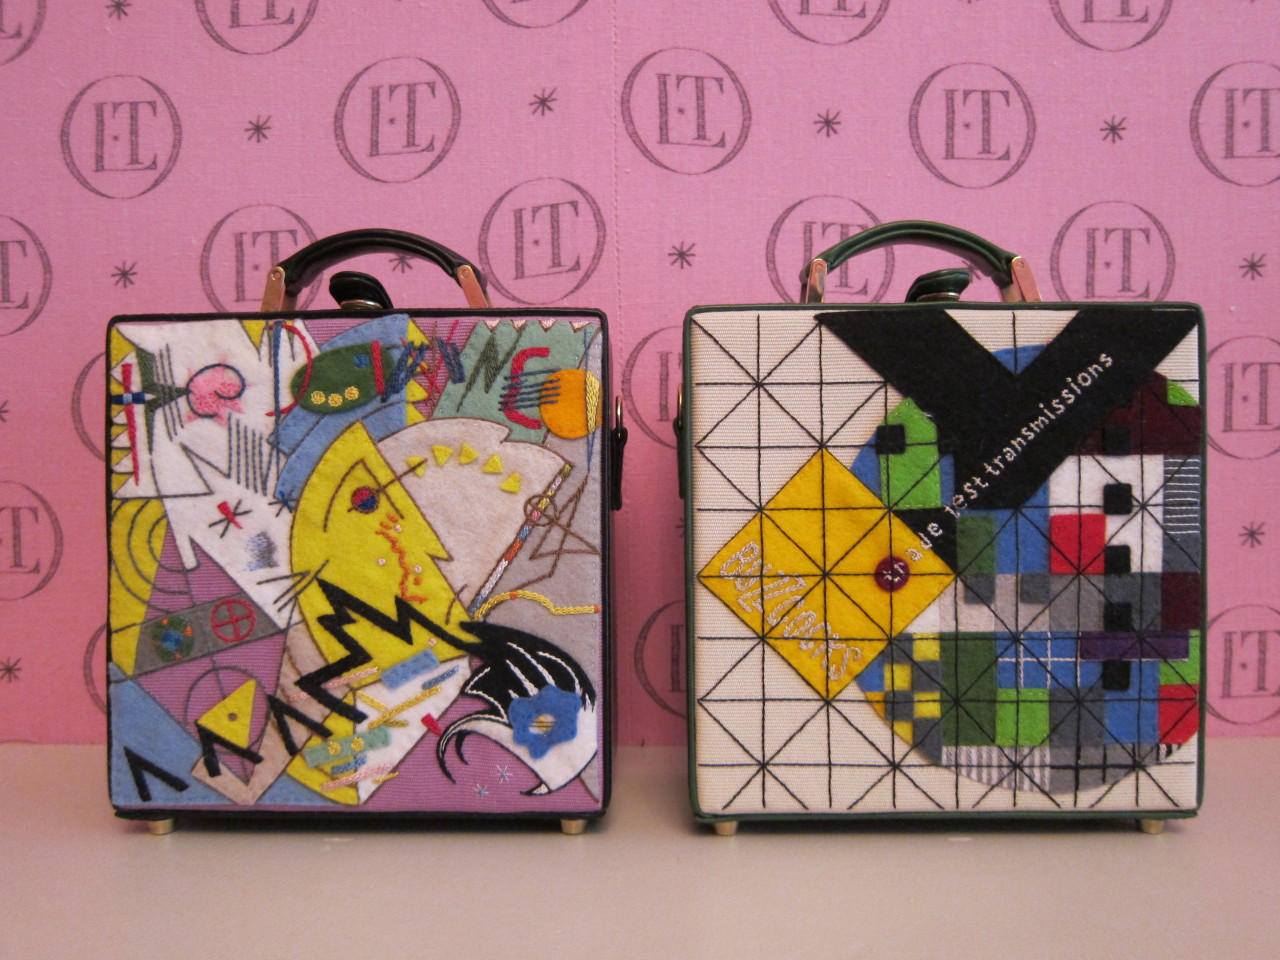 "The Damned and The Buzzcocks limited edition 7"" clutches by Olympia Le-Tan, available in May exclusively at olympialetan.com."